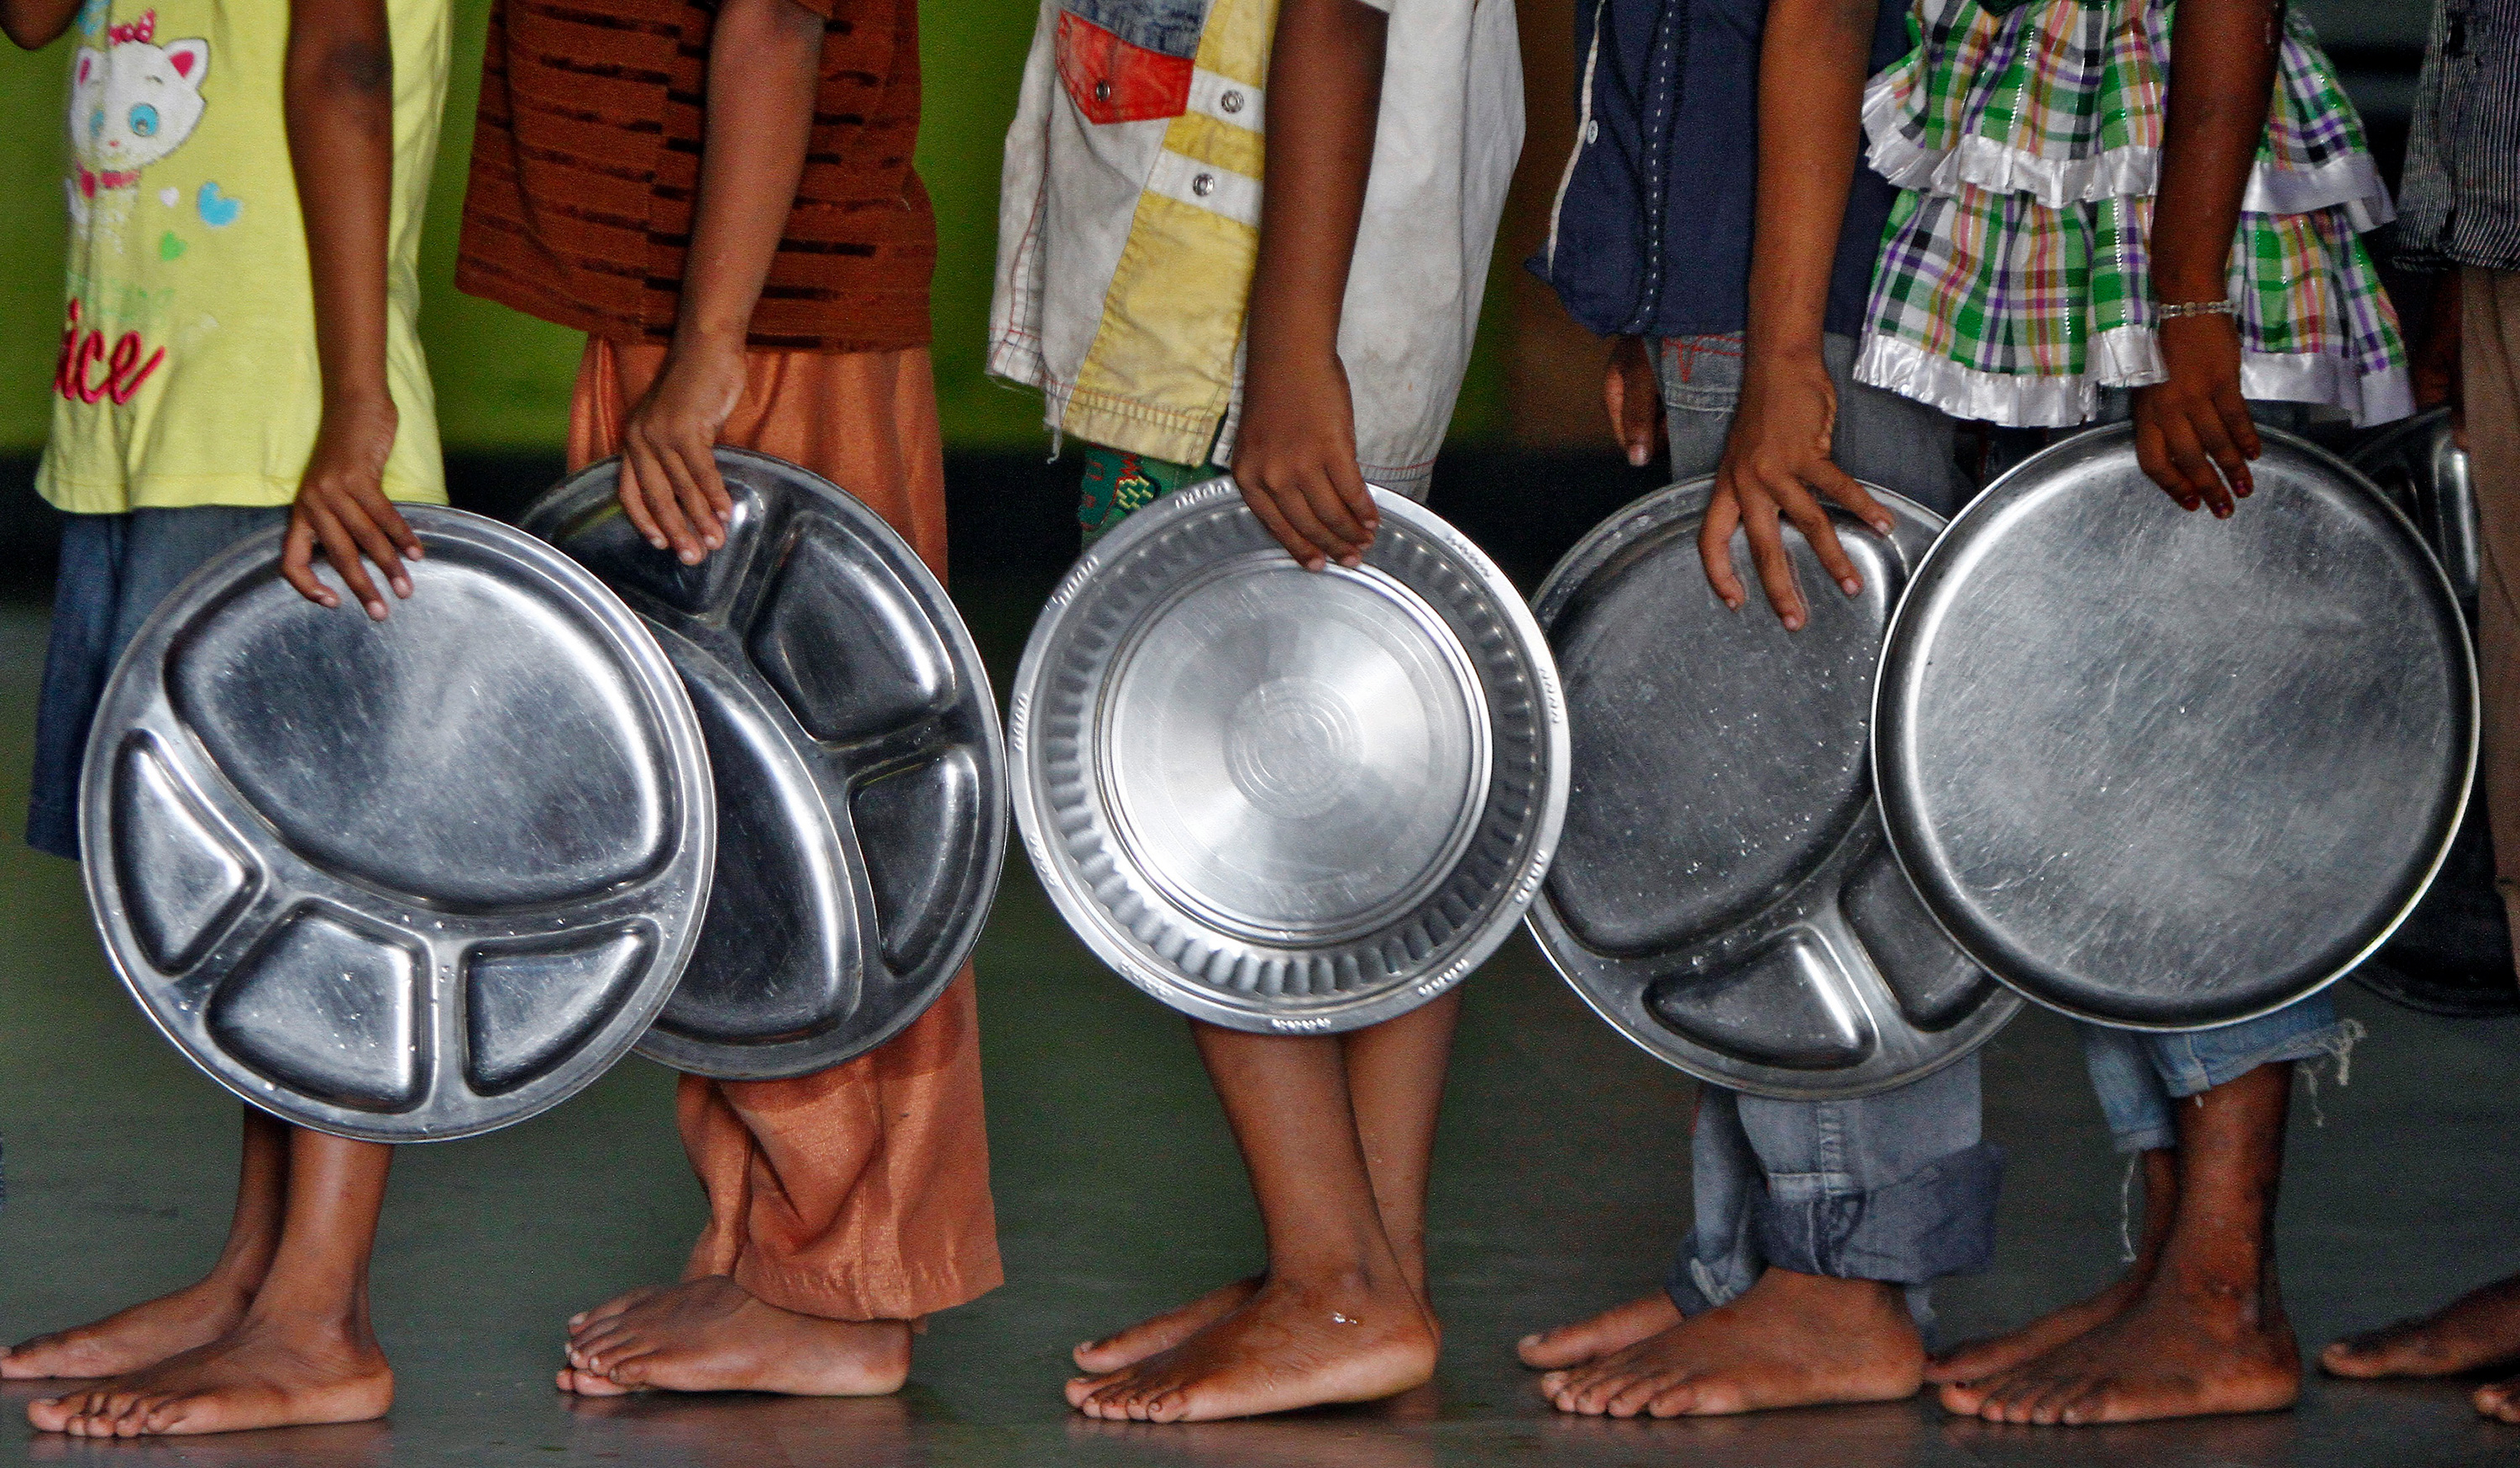 The photo shows a long line of people holding large metal platters.